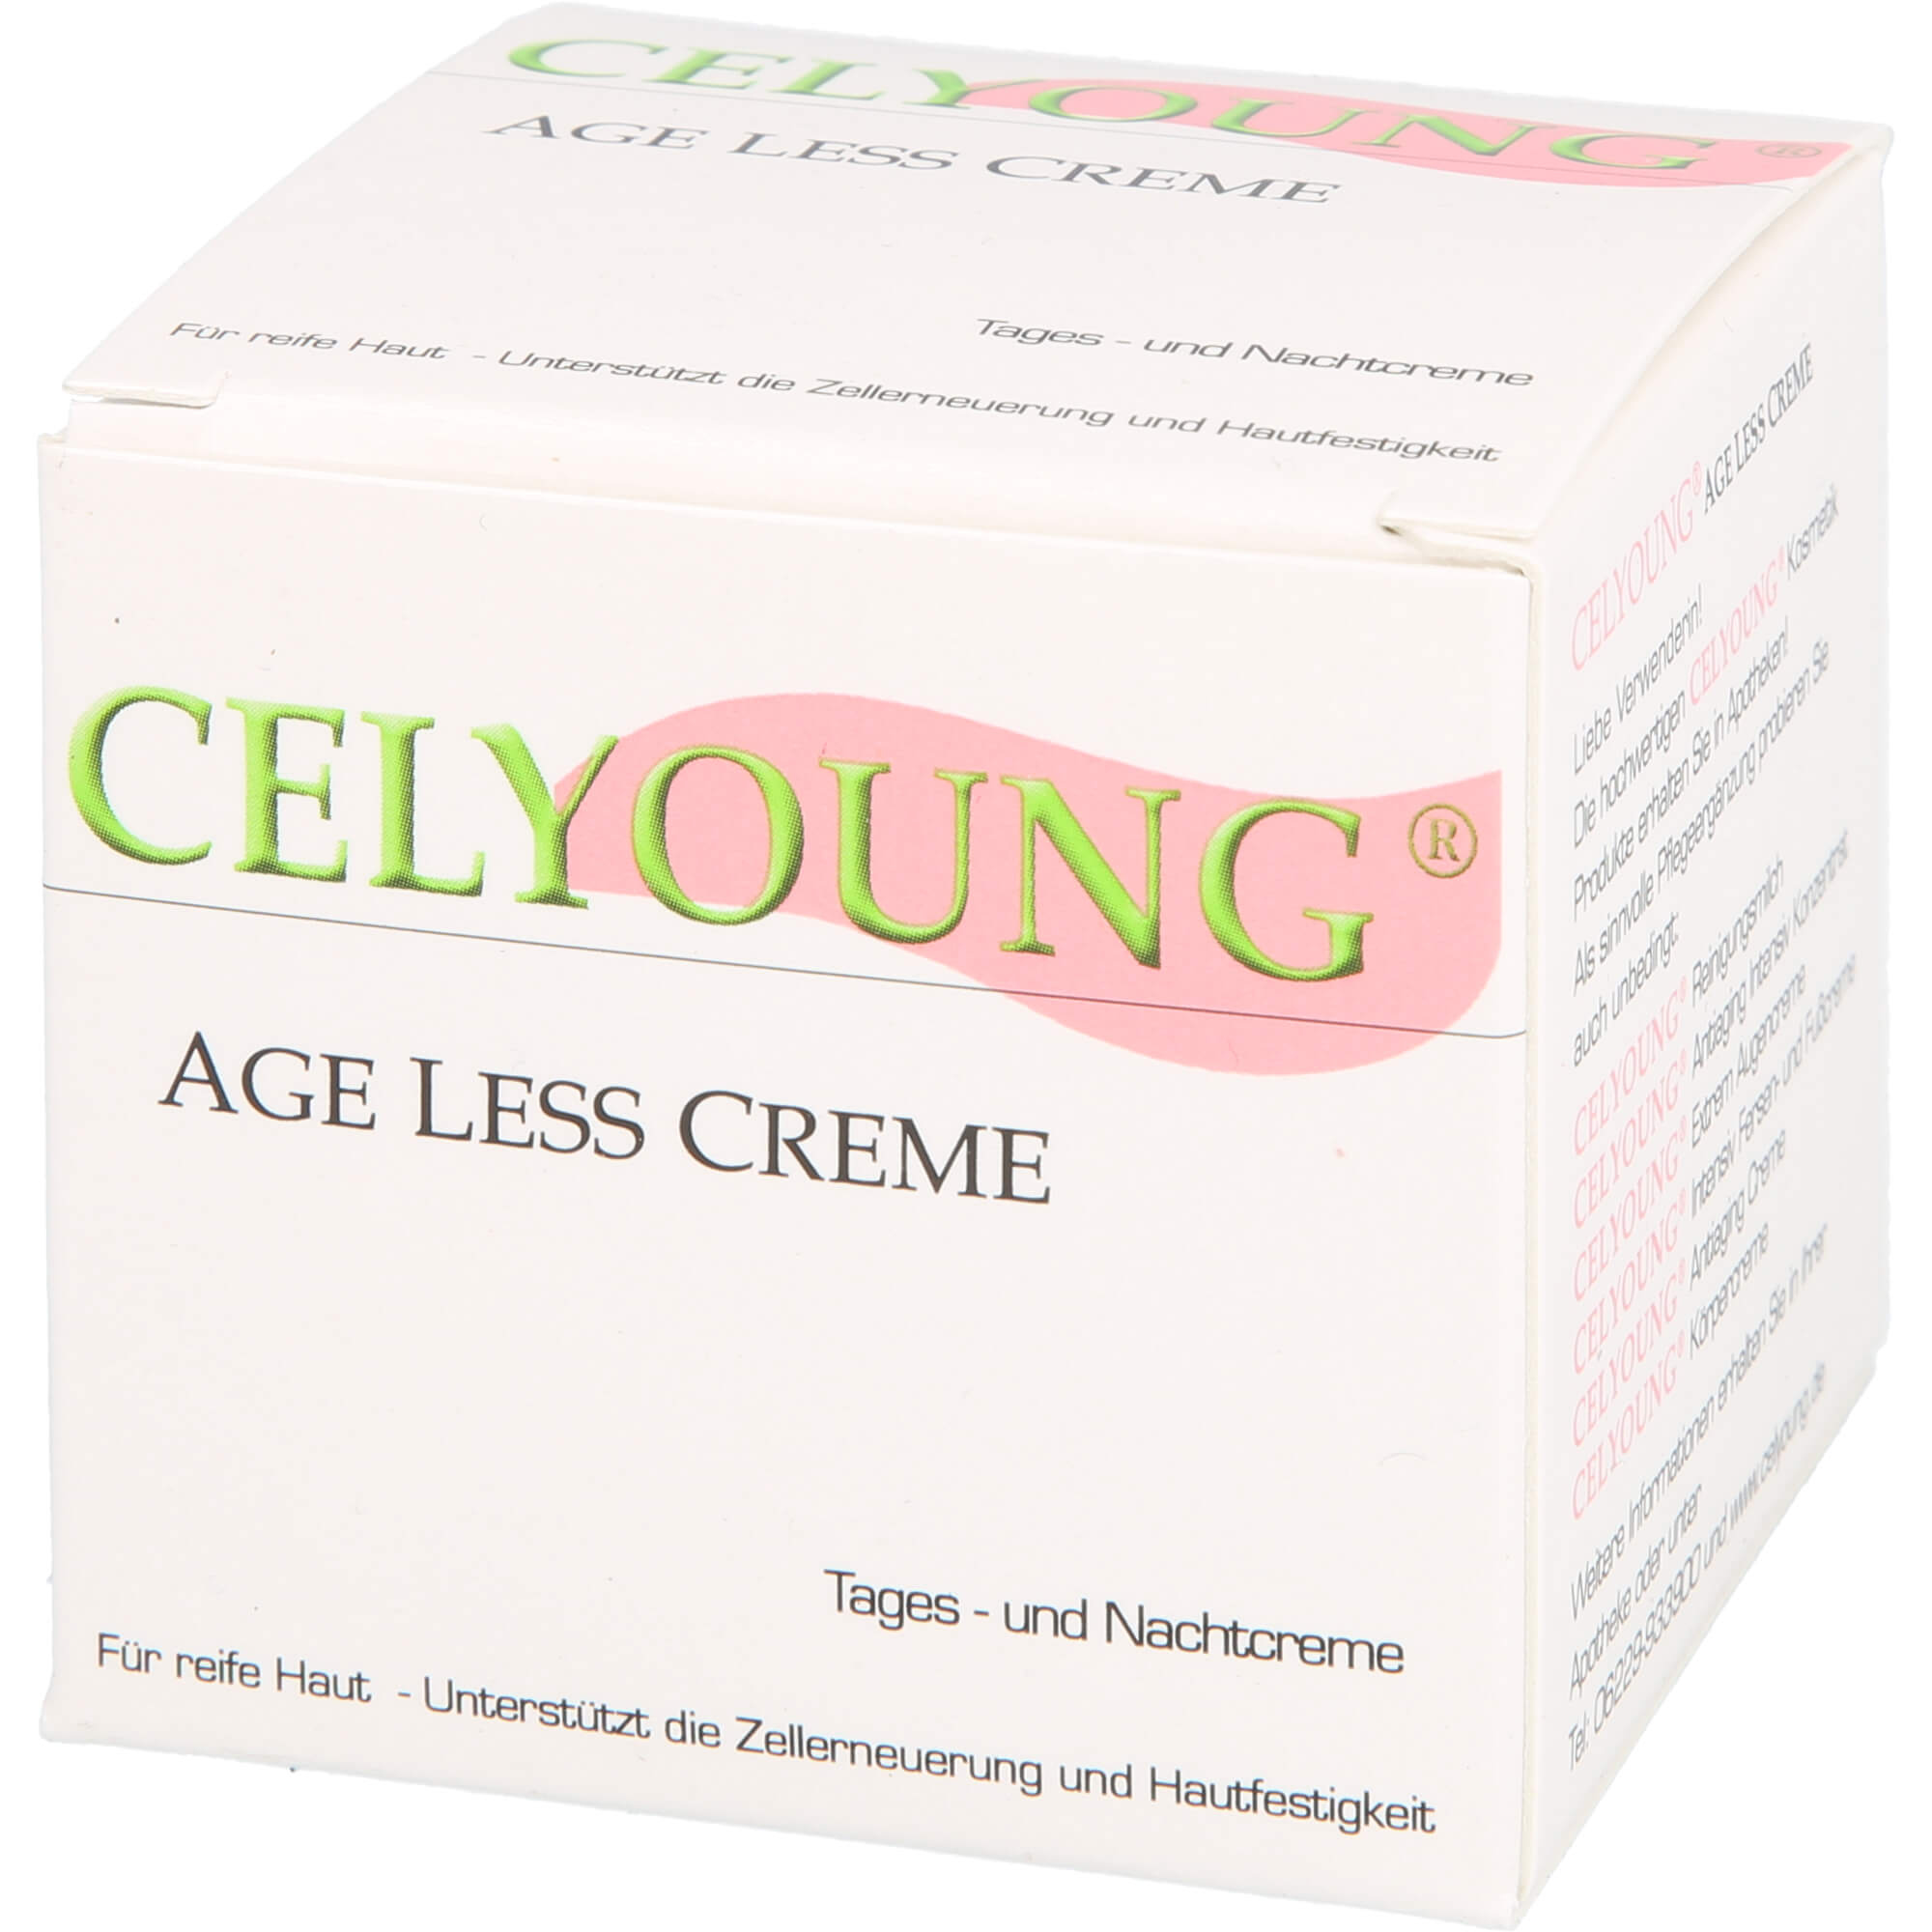 CELYOUNG age less Creme